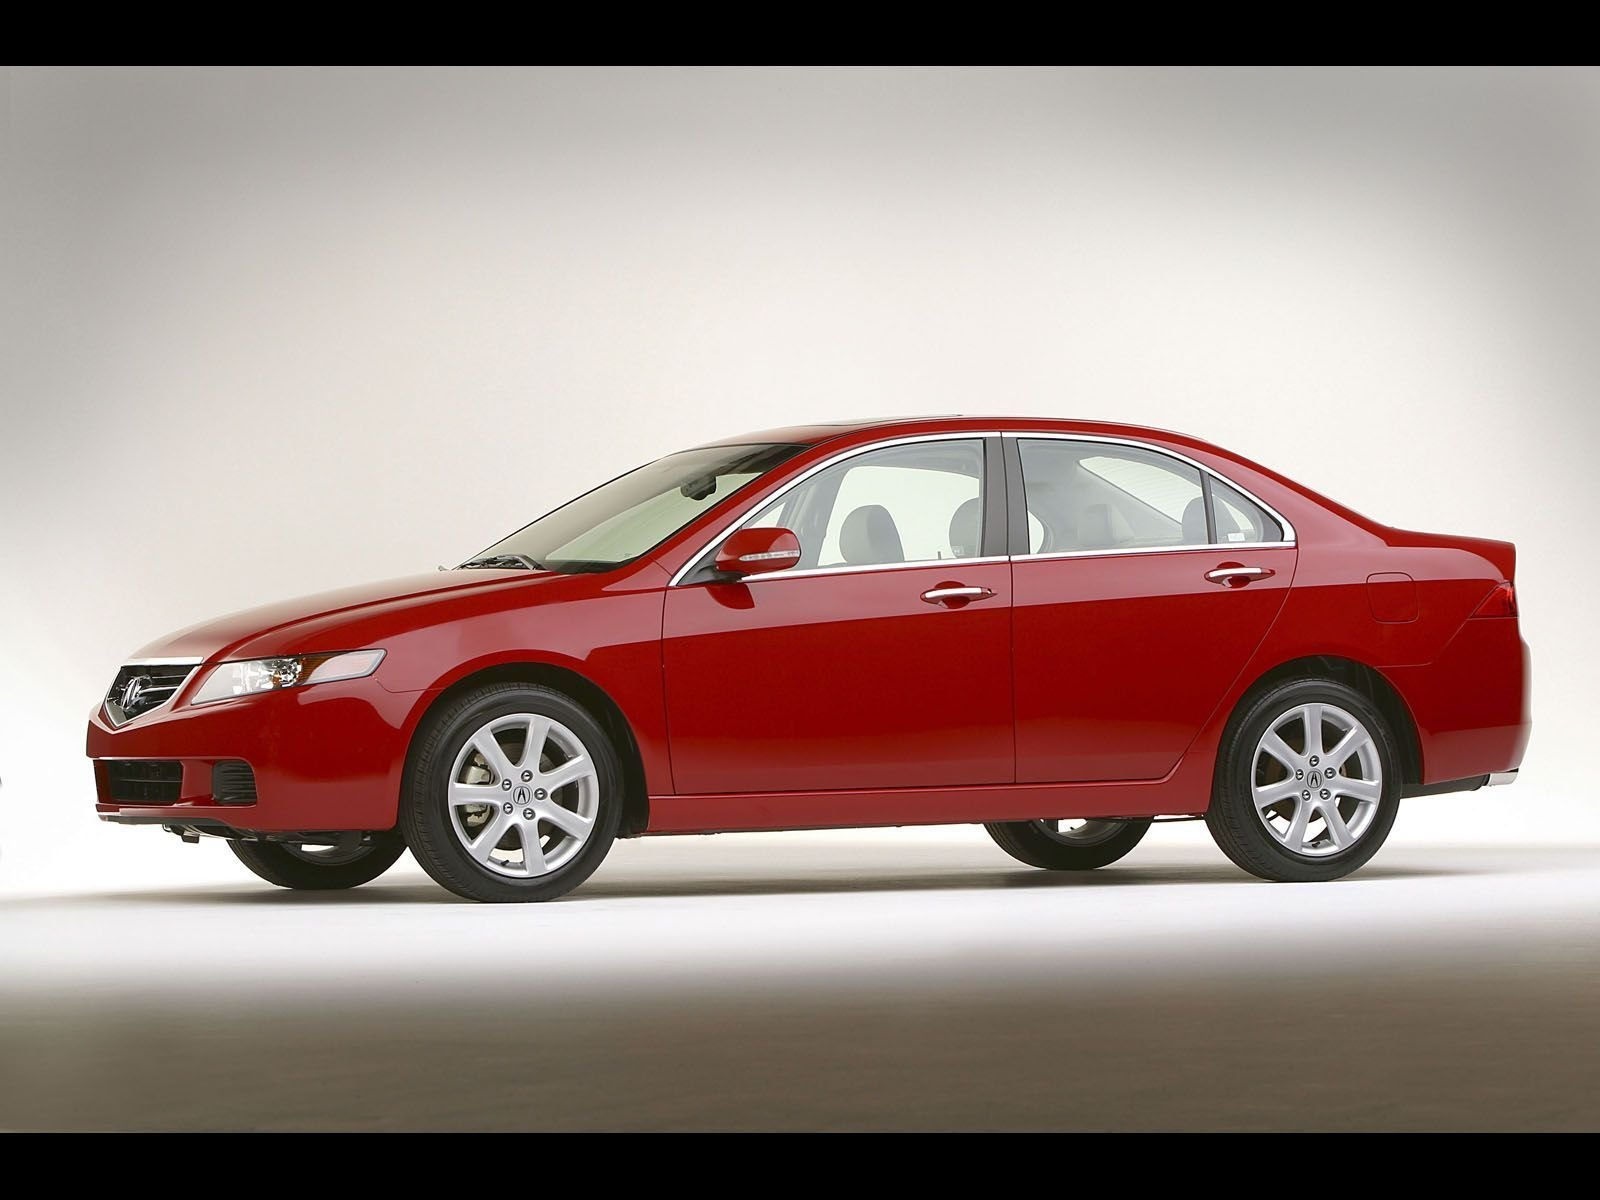 2005 acura tsx picture 29086 car review top speed. Black Bedroom Furniture Sets. Home Design Ideas